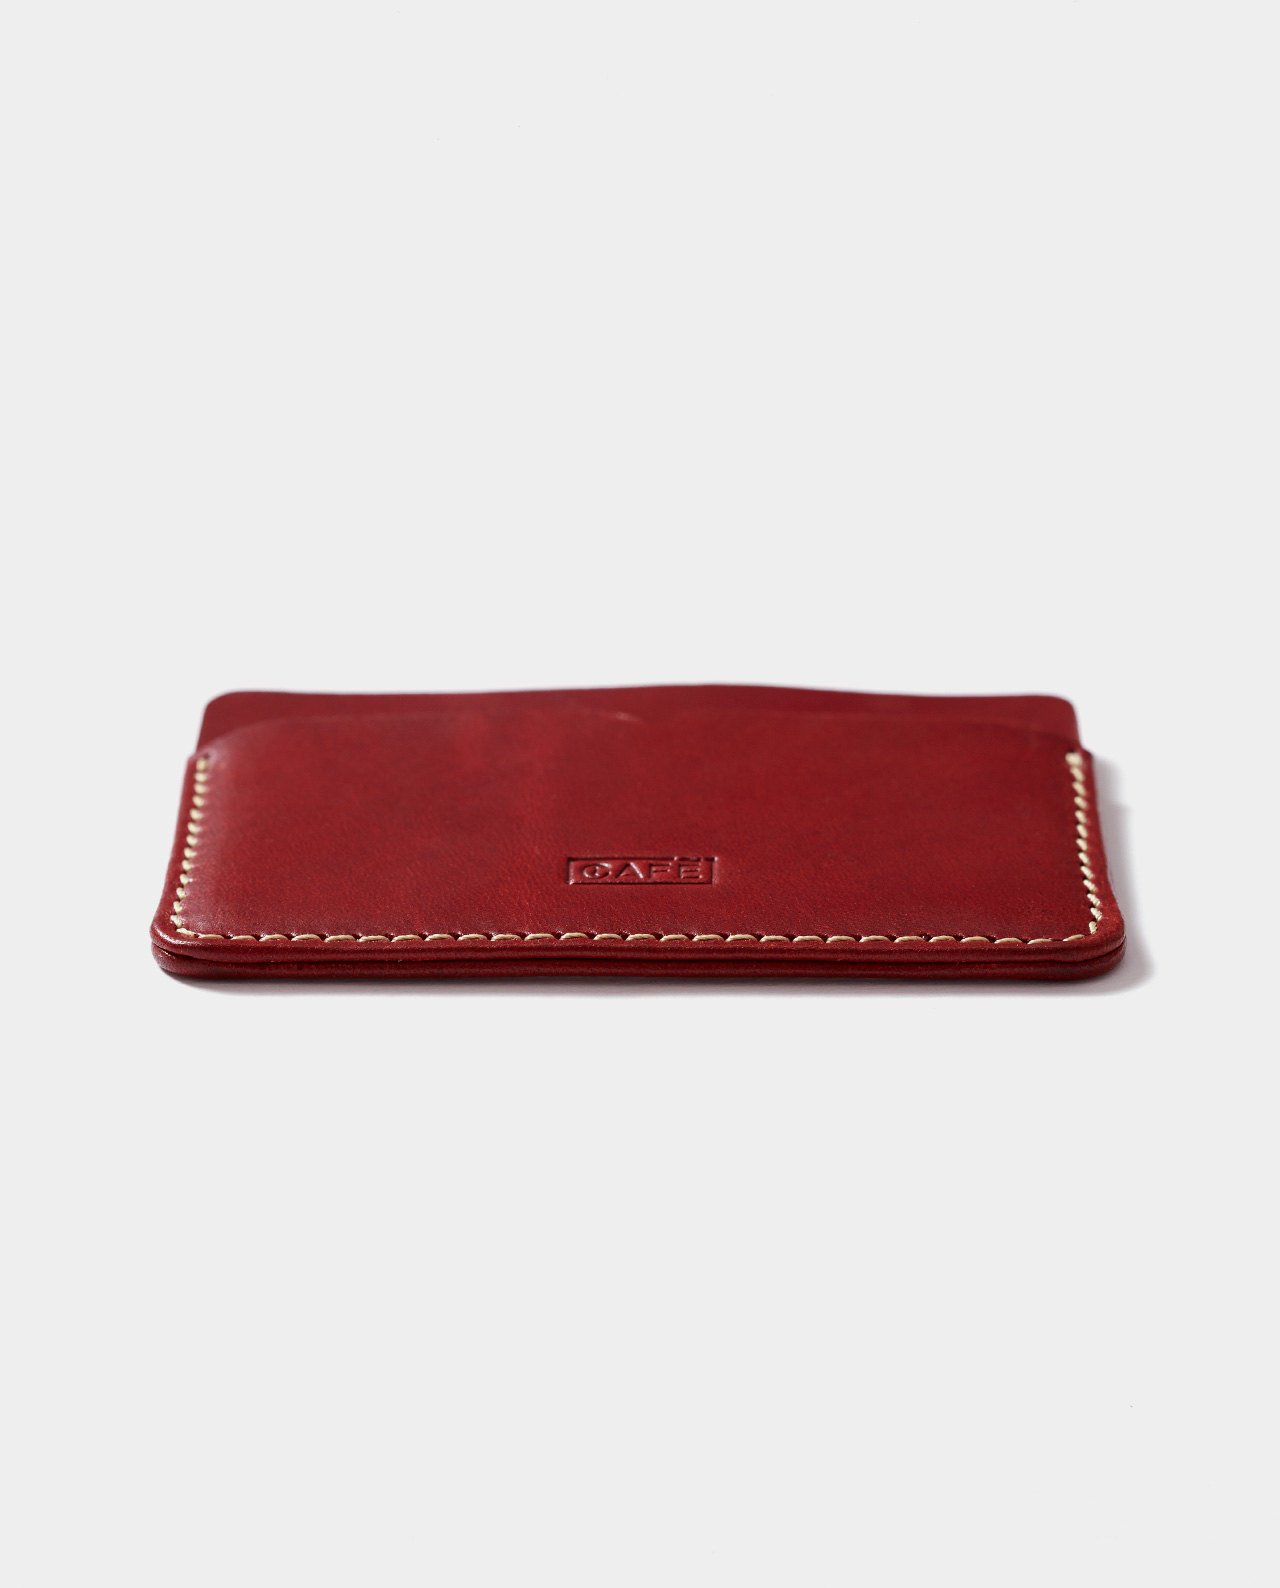 leather card holder red for cards and bills